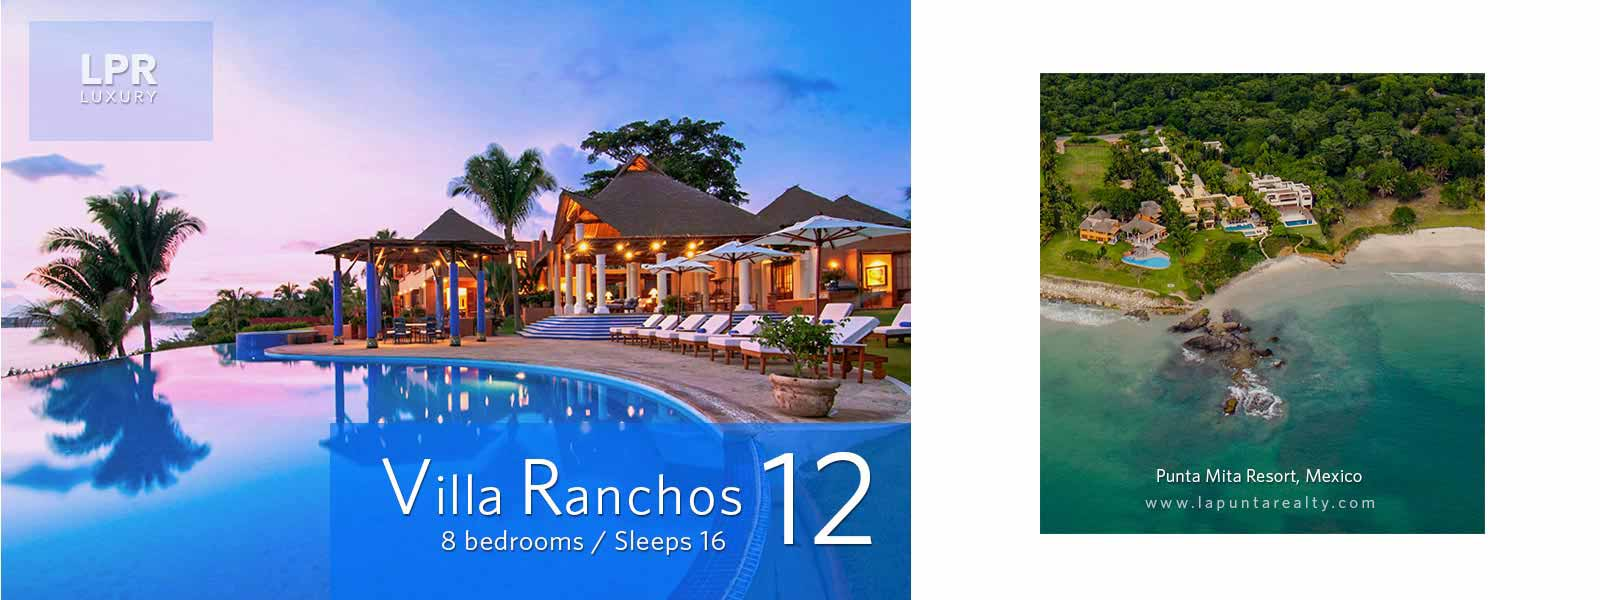 Villa Ranchos 12 - Luxury Punta Mita Real Estate and Vacation Villa Rentals